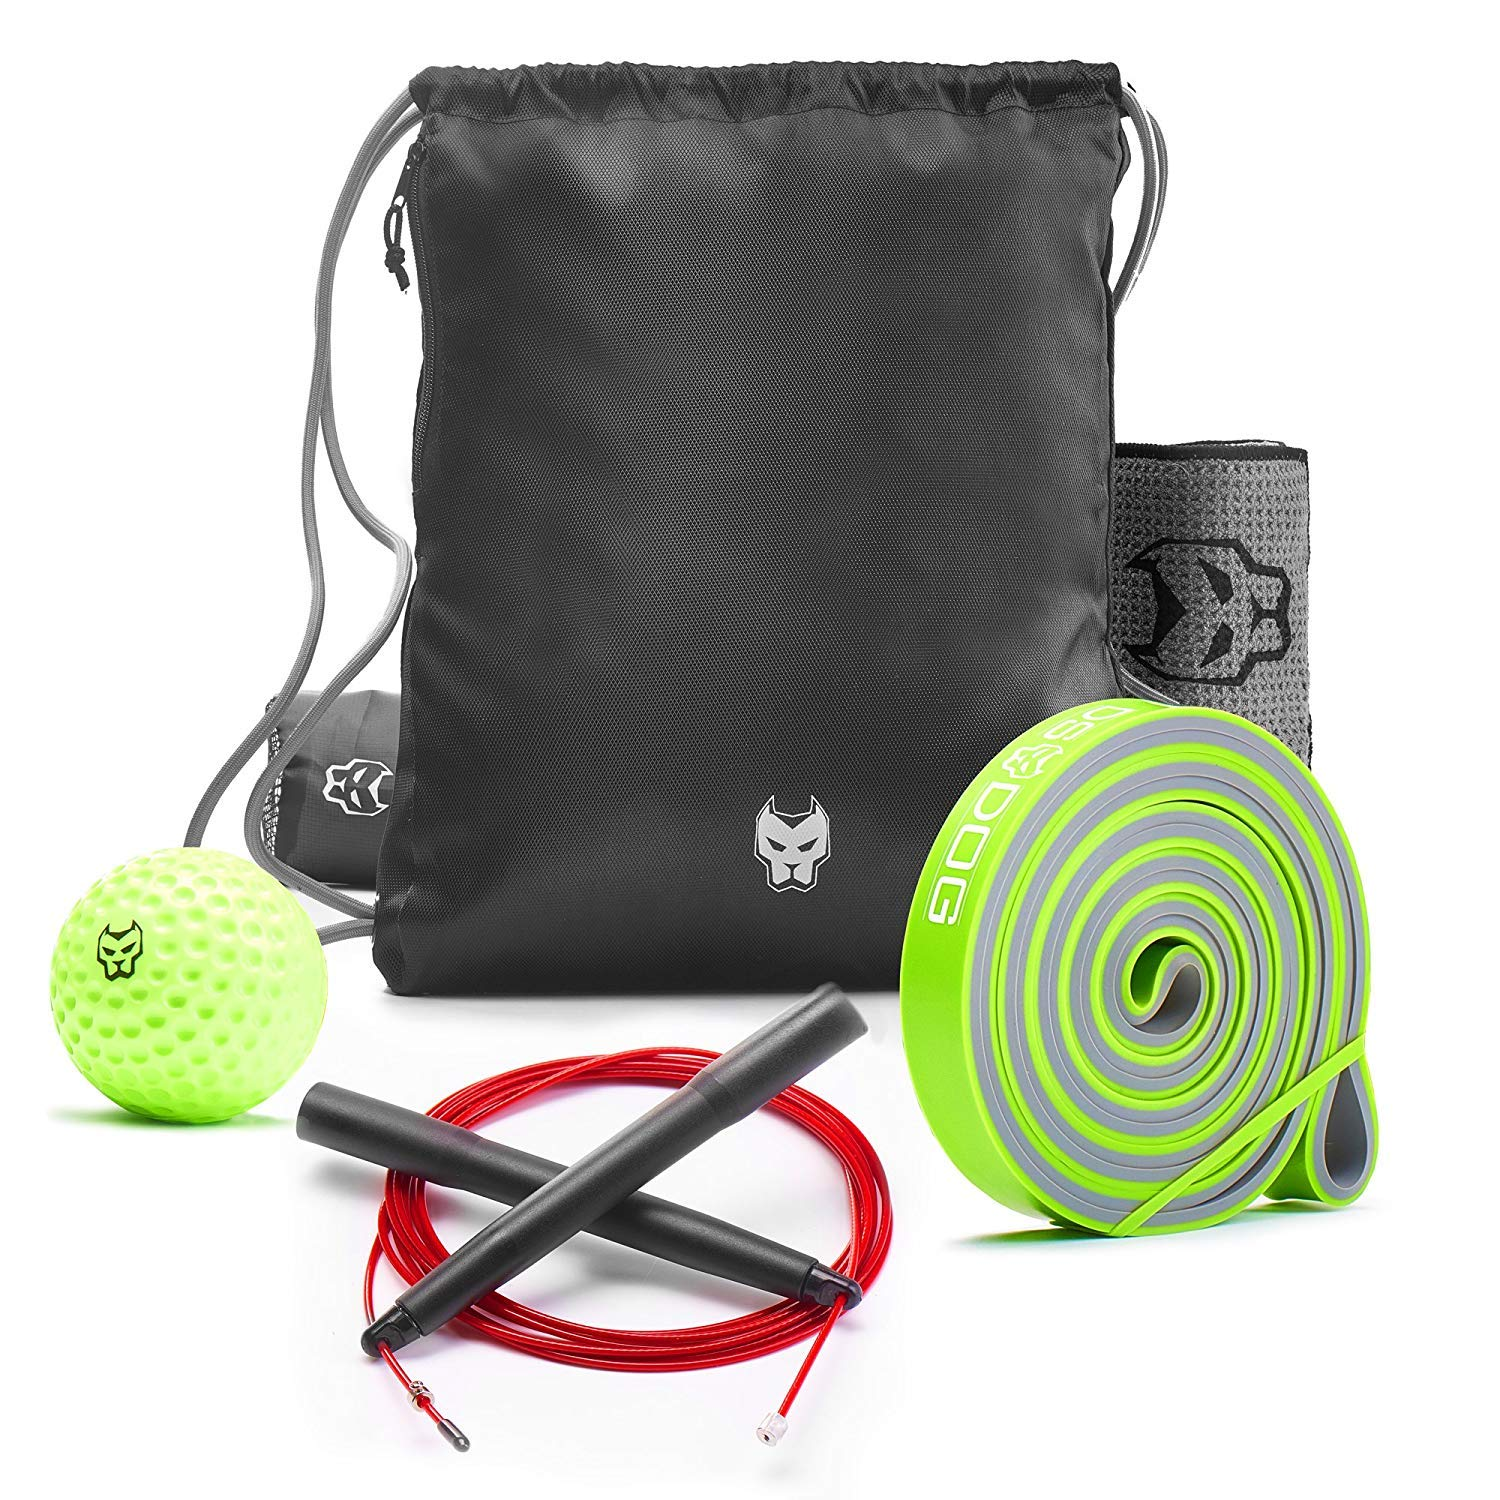 KONUNGR Workout Set for Home Fitness on Quarantine - Pull Up Band - Massage Ball - Sport Towel - Jump Rope - Stay at Home & Get Fit During Isolation